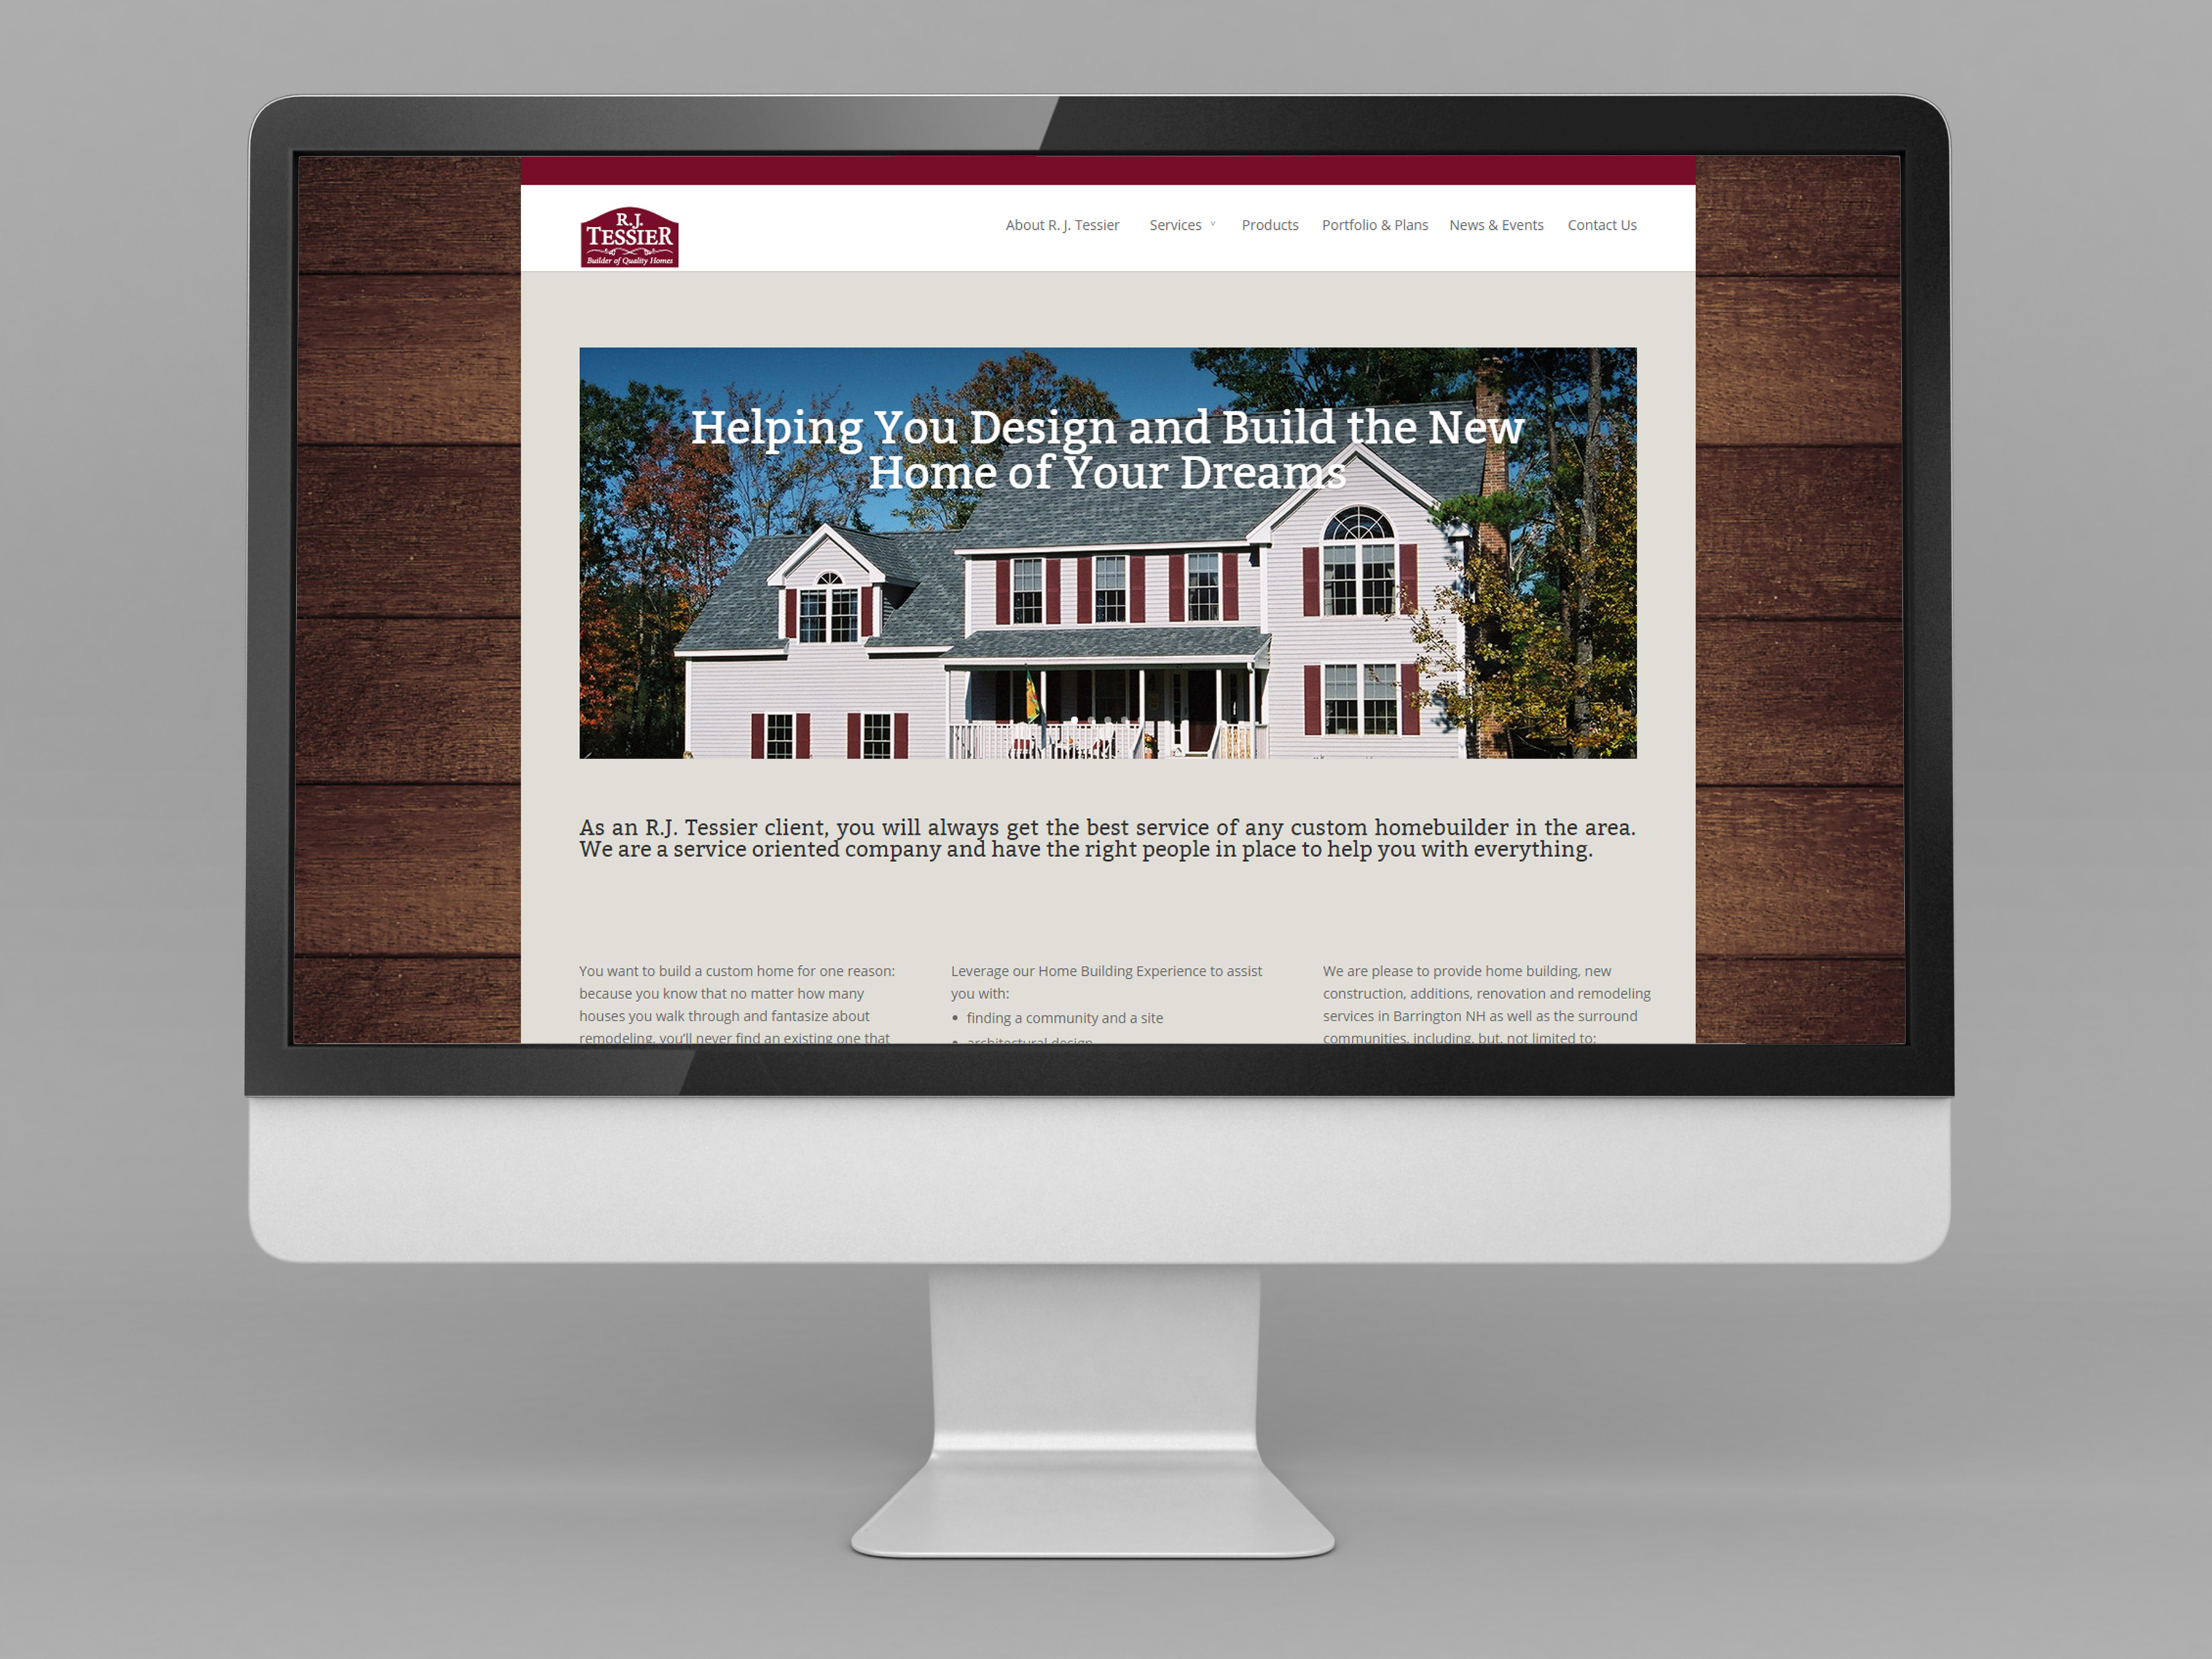 Website_R-J-Tessier-homebuilder